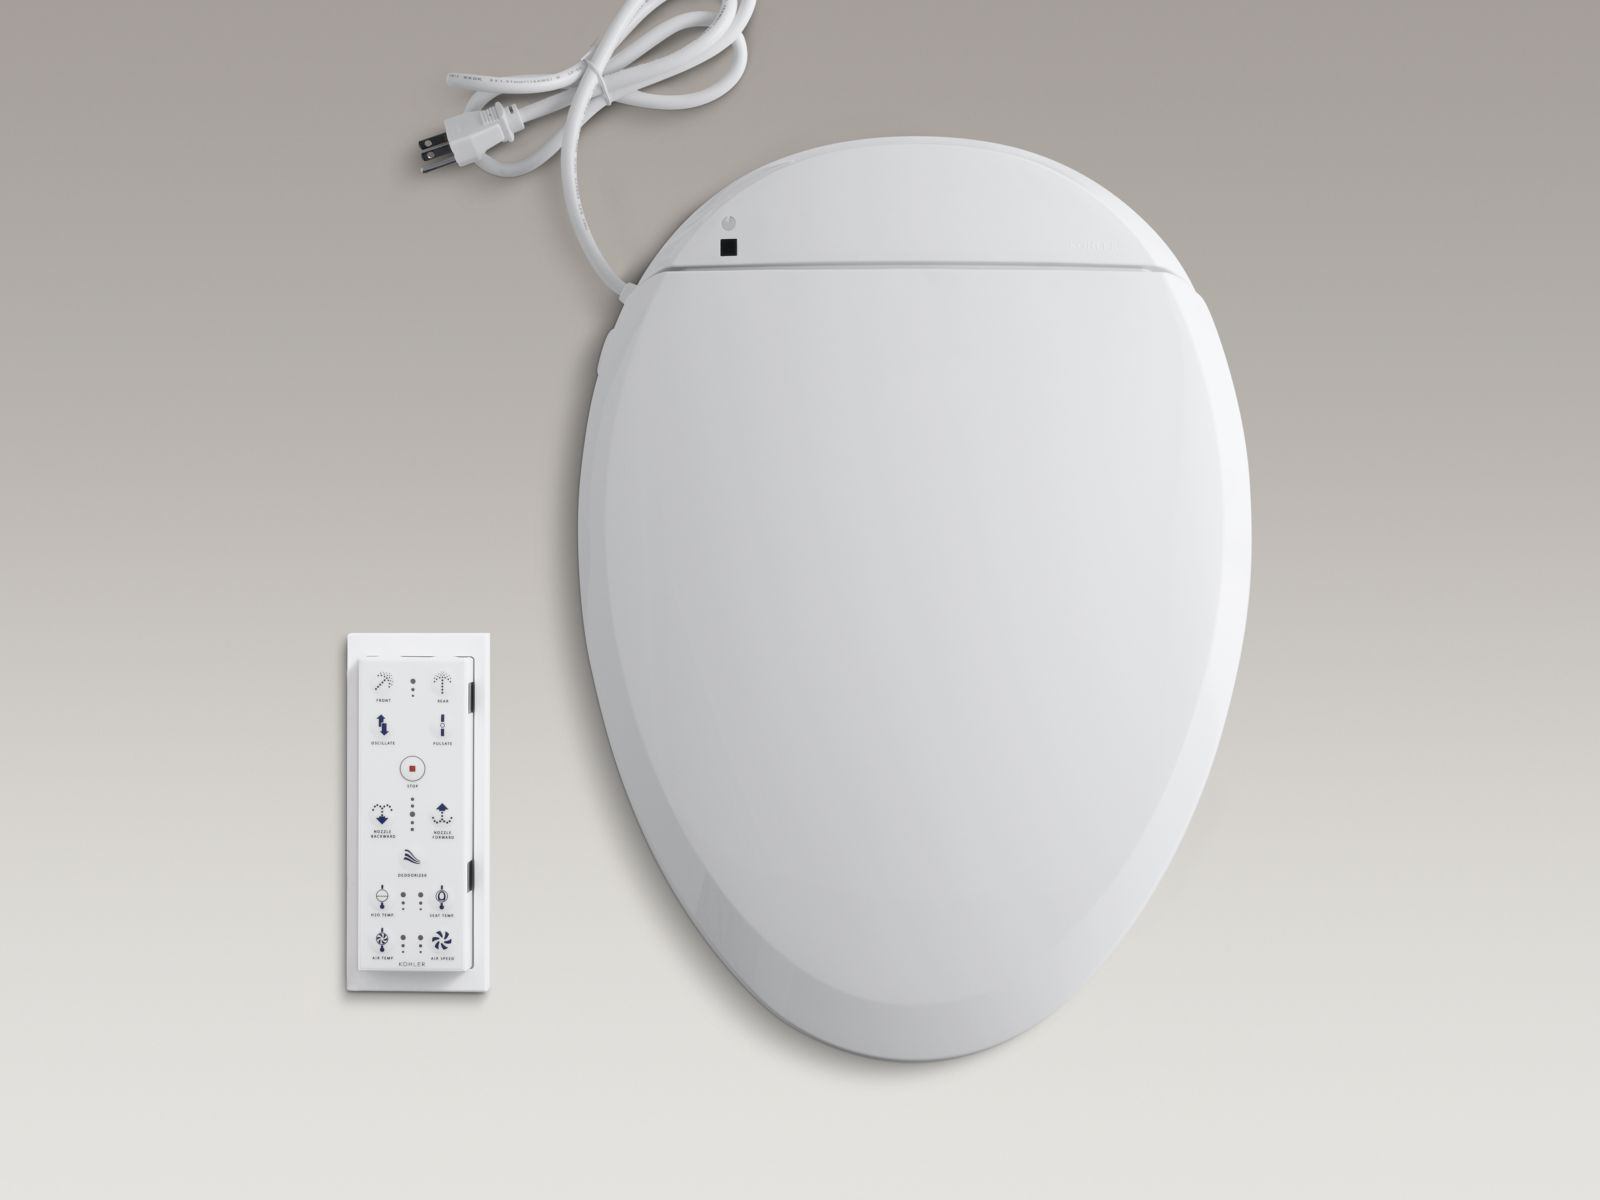 Kohler K-4709-0 C3-200 Elongated Closed-front Toilet Seat with Bidet Functionality, In-line heater, and Remote Control White